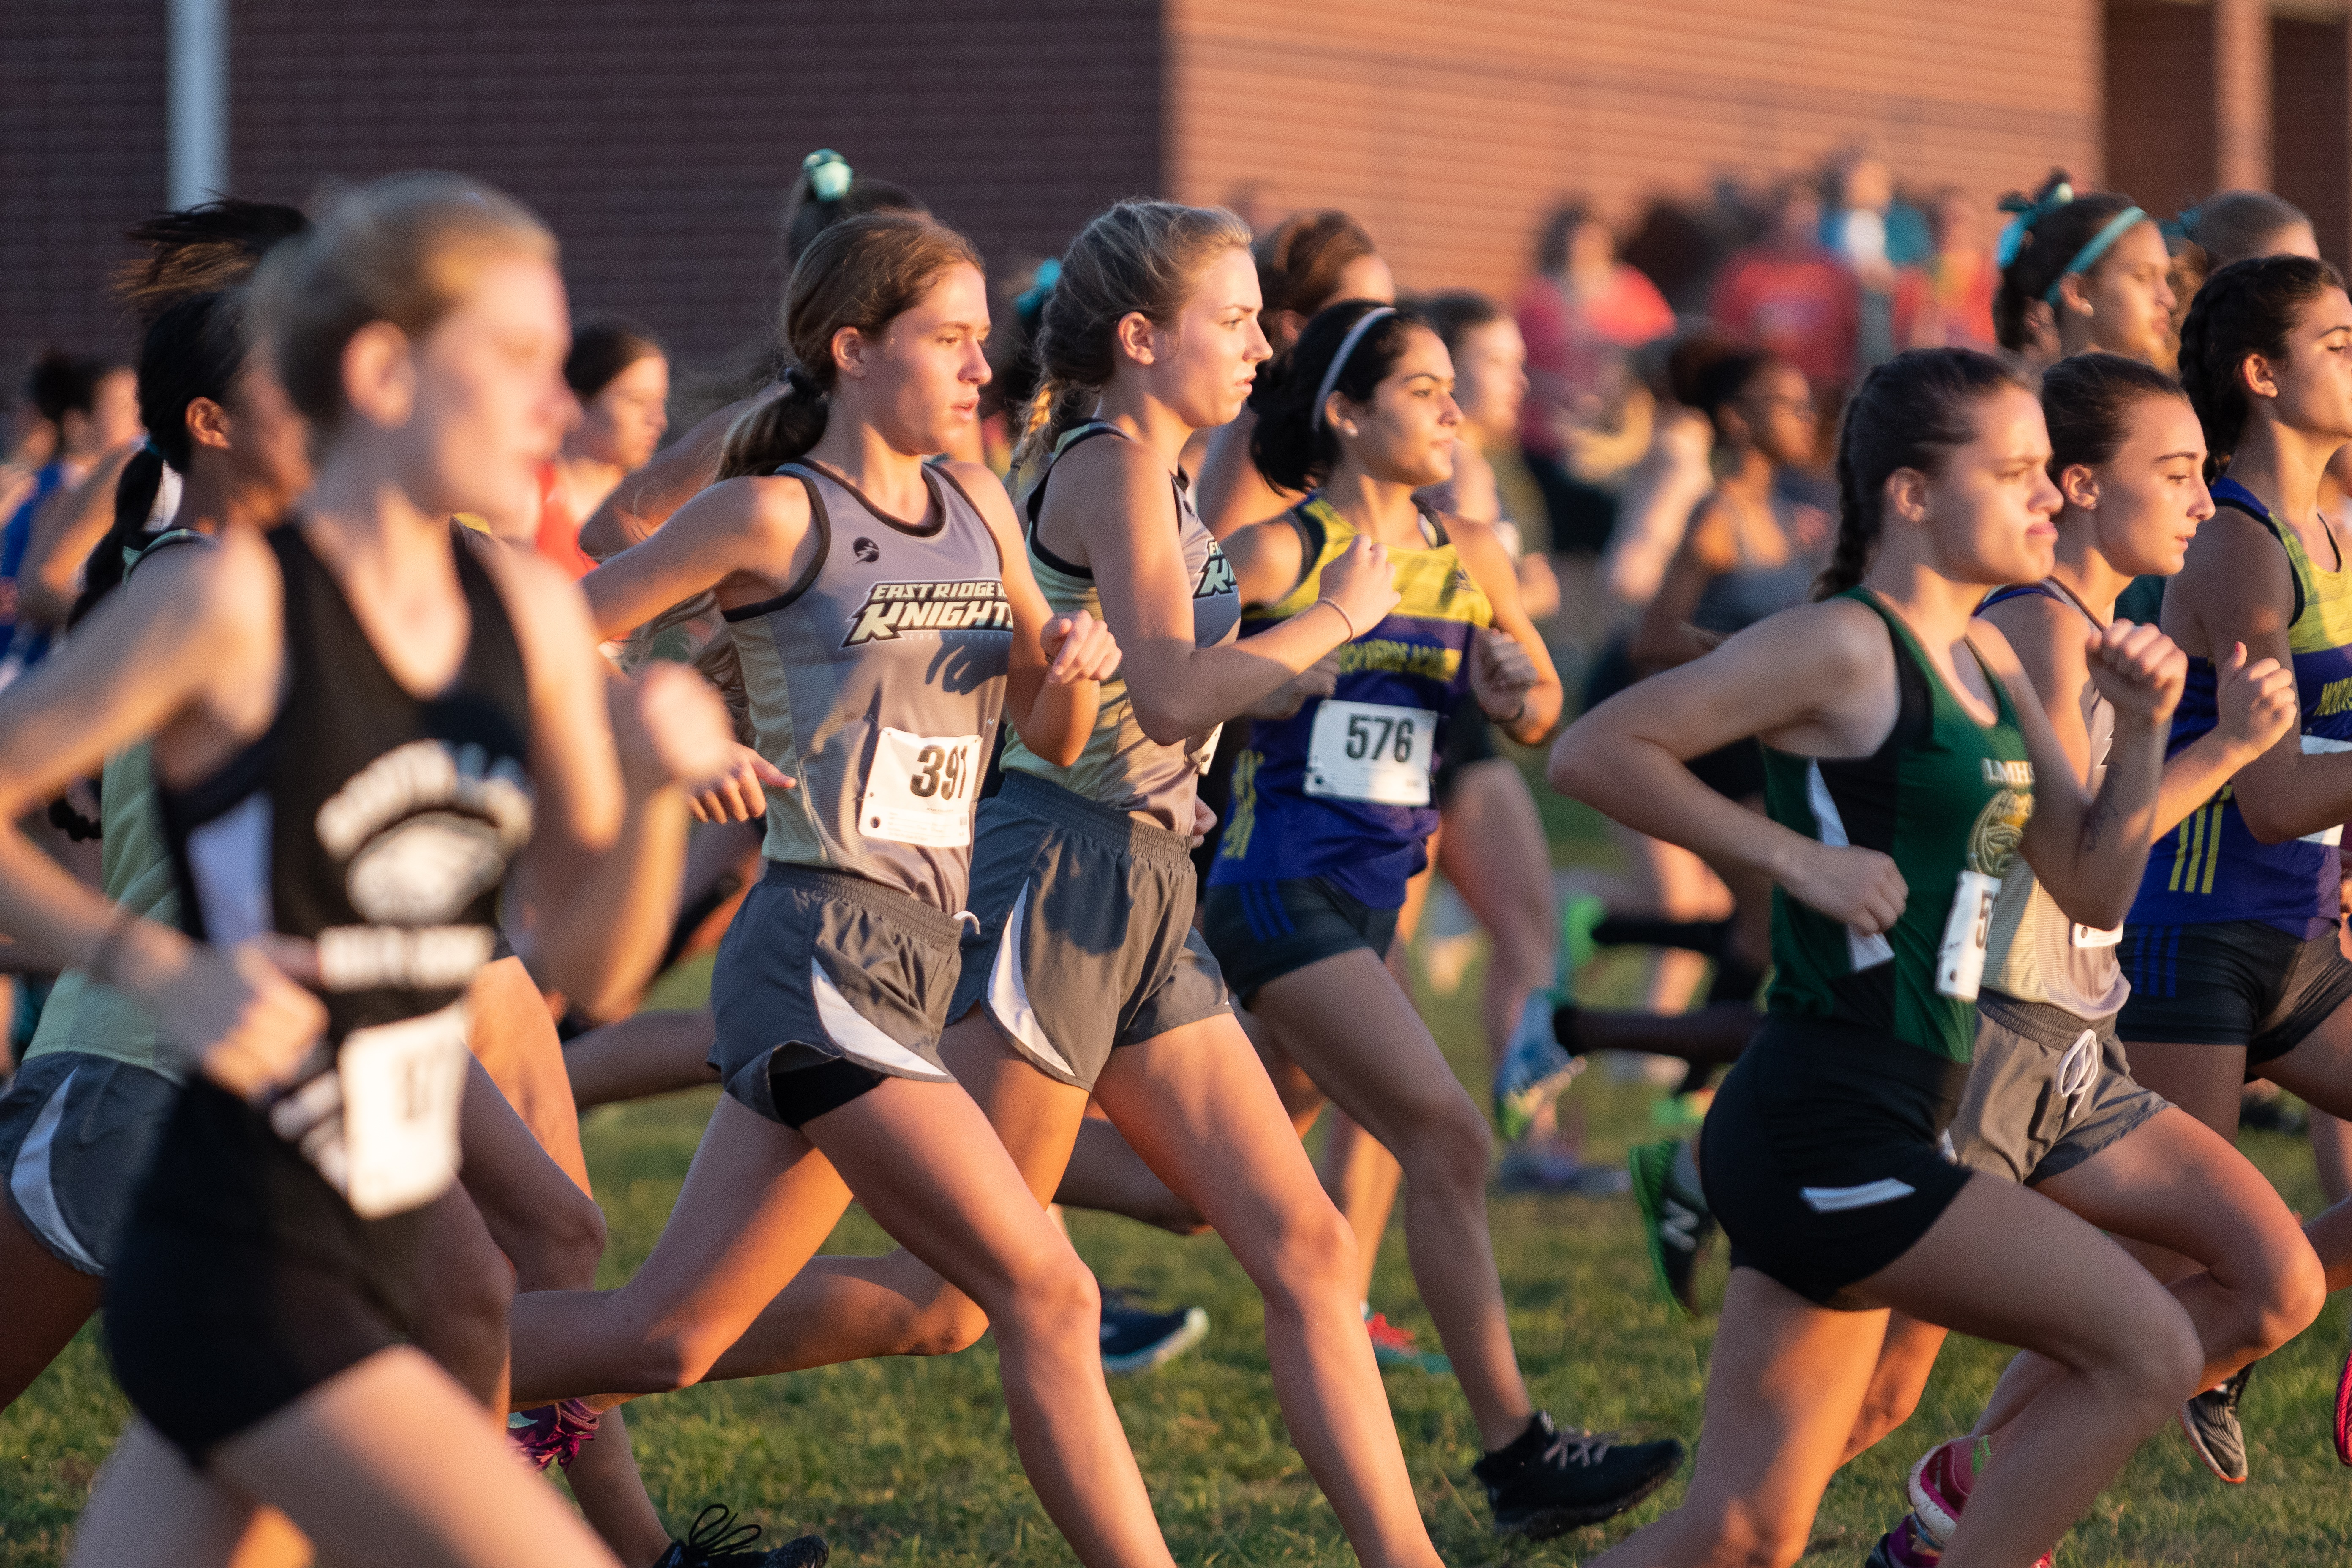 Girls Varsity Cross Country finishes 3rd place at Early Hawk Invitational